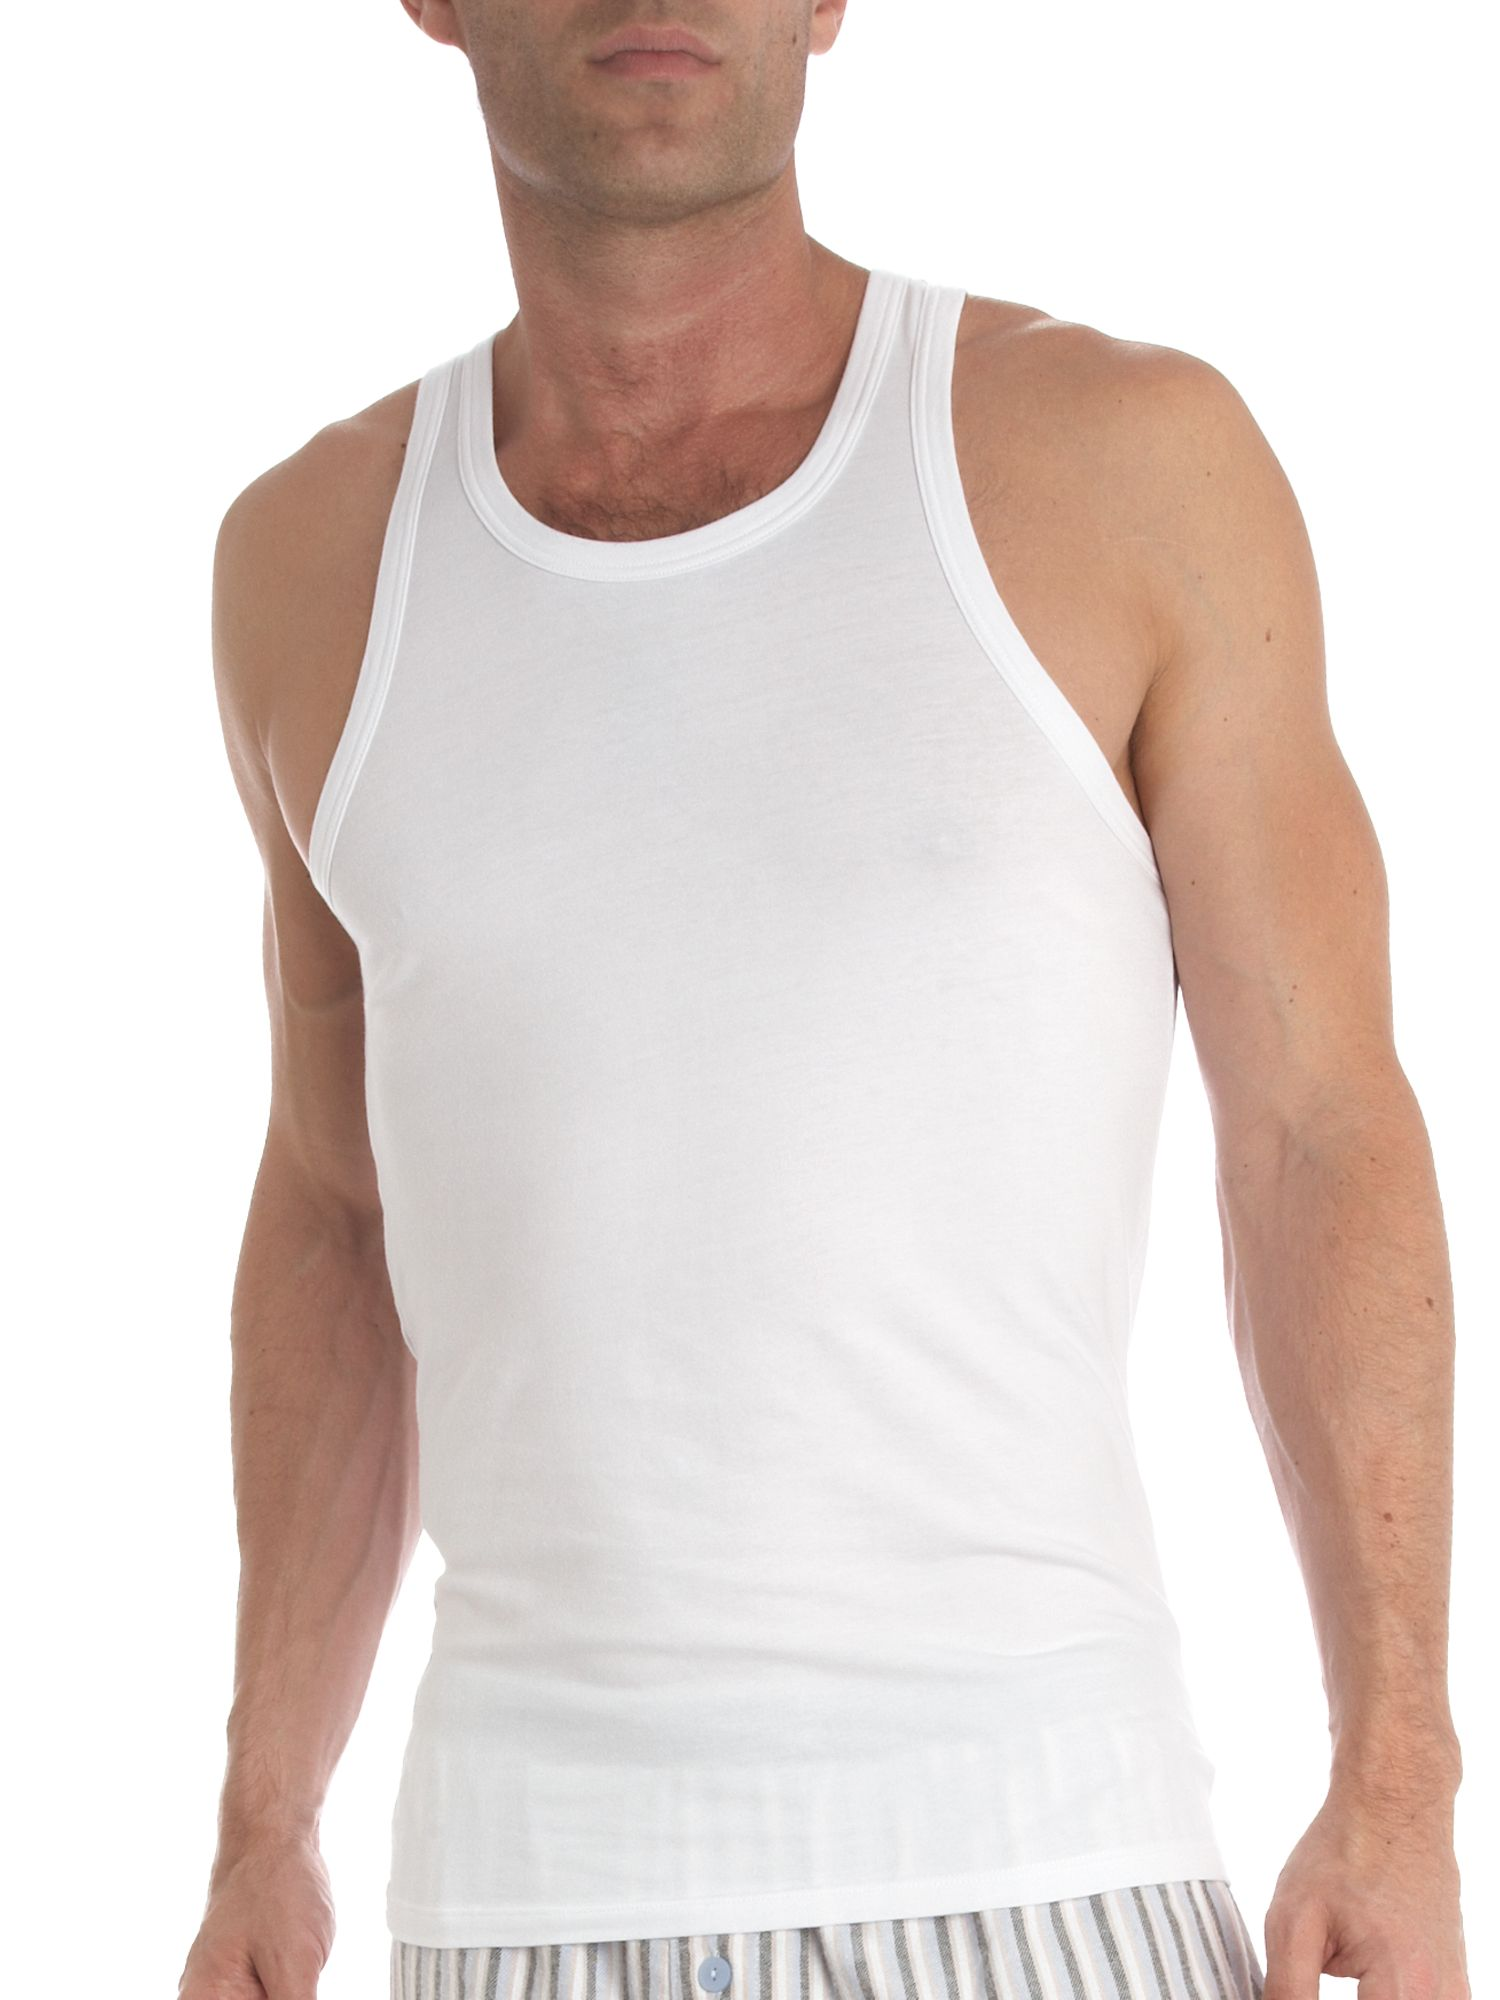 Calvin Klein Two pack 365 vest product image